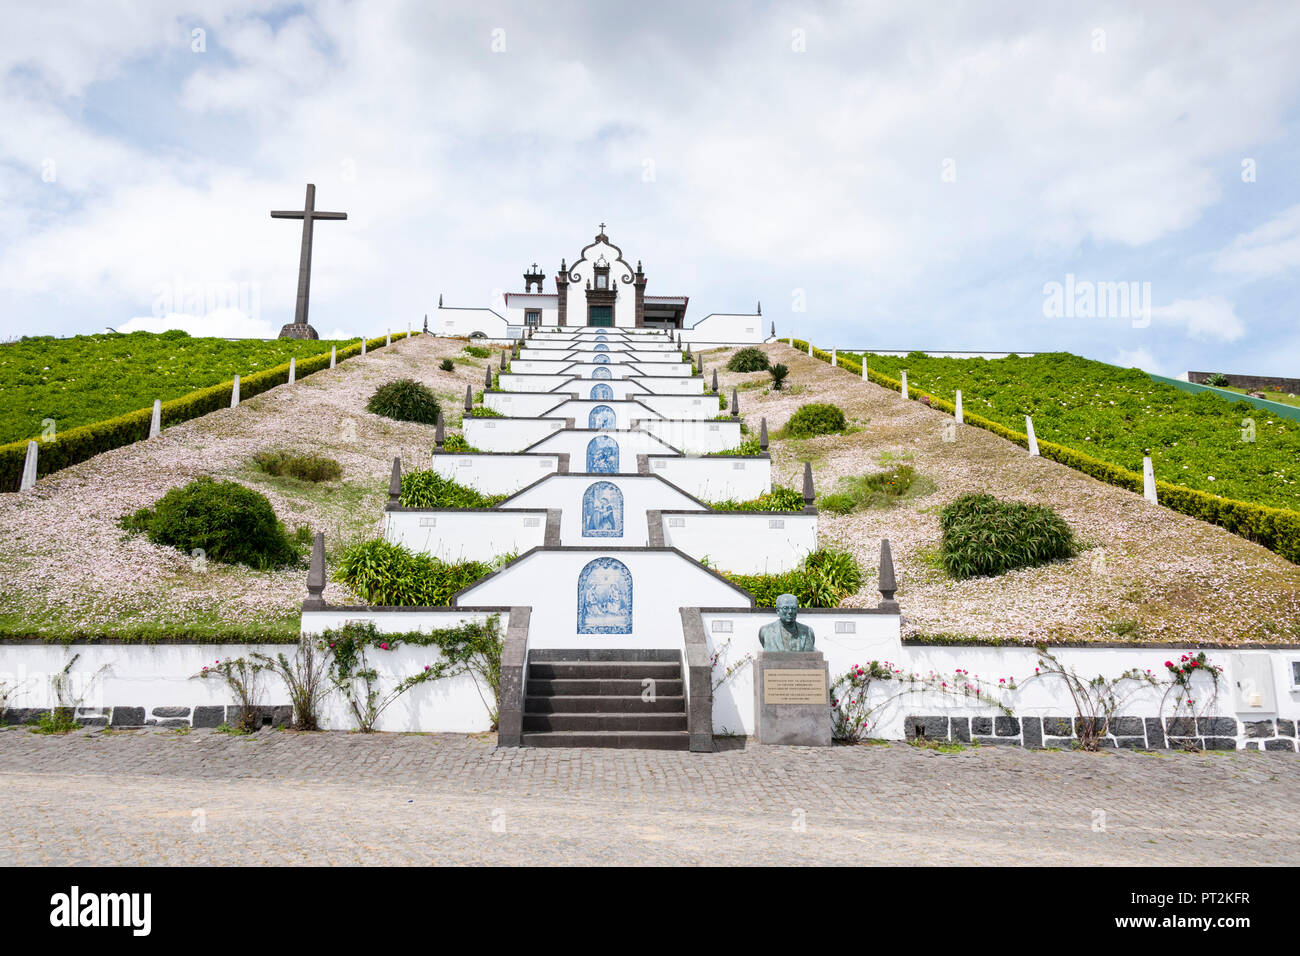 Stairway to the Vila Franca do Campo Votive Church, tile paintings adorning every gate - Stock Image